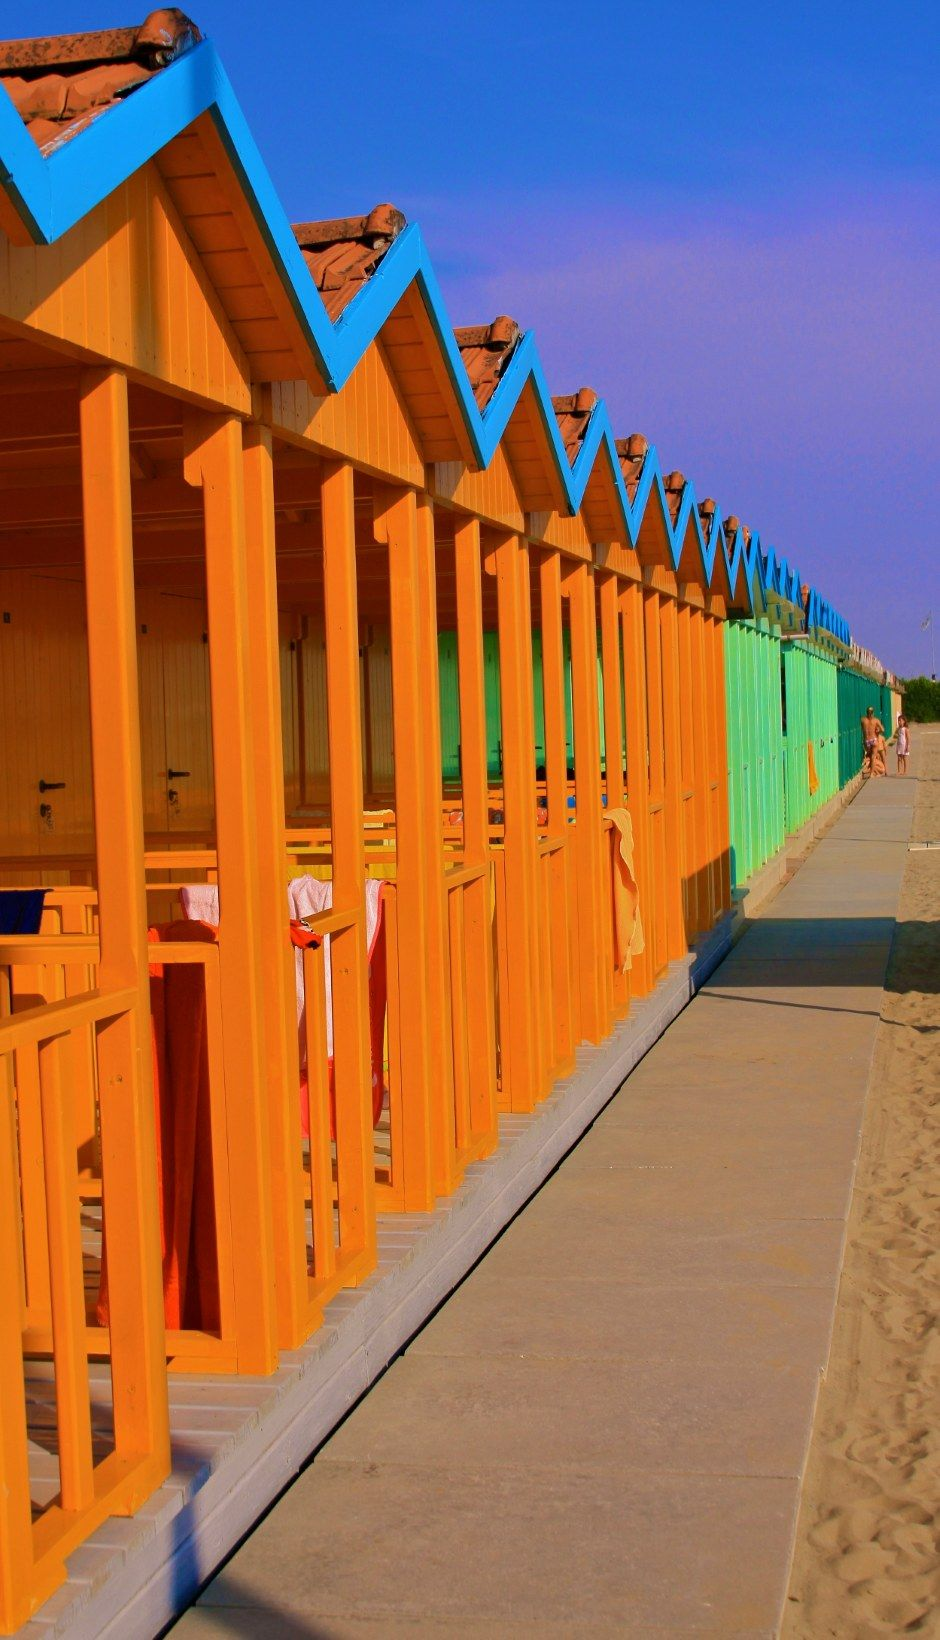 Italian Case Forte Dei Marmi forte dei marmi, italy, where my love of beach huts began